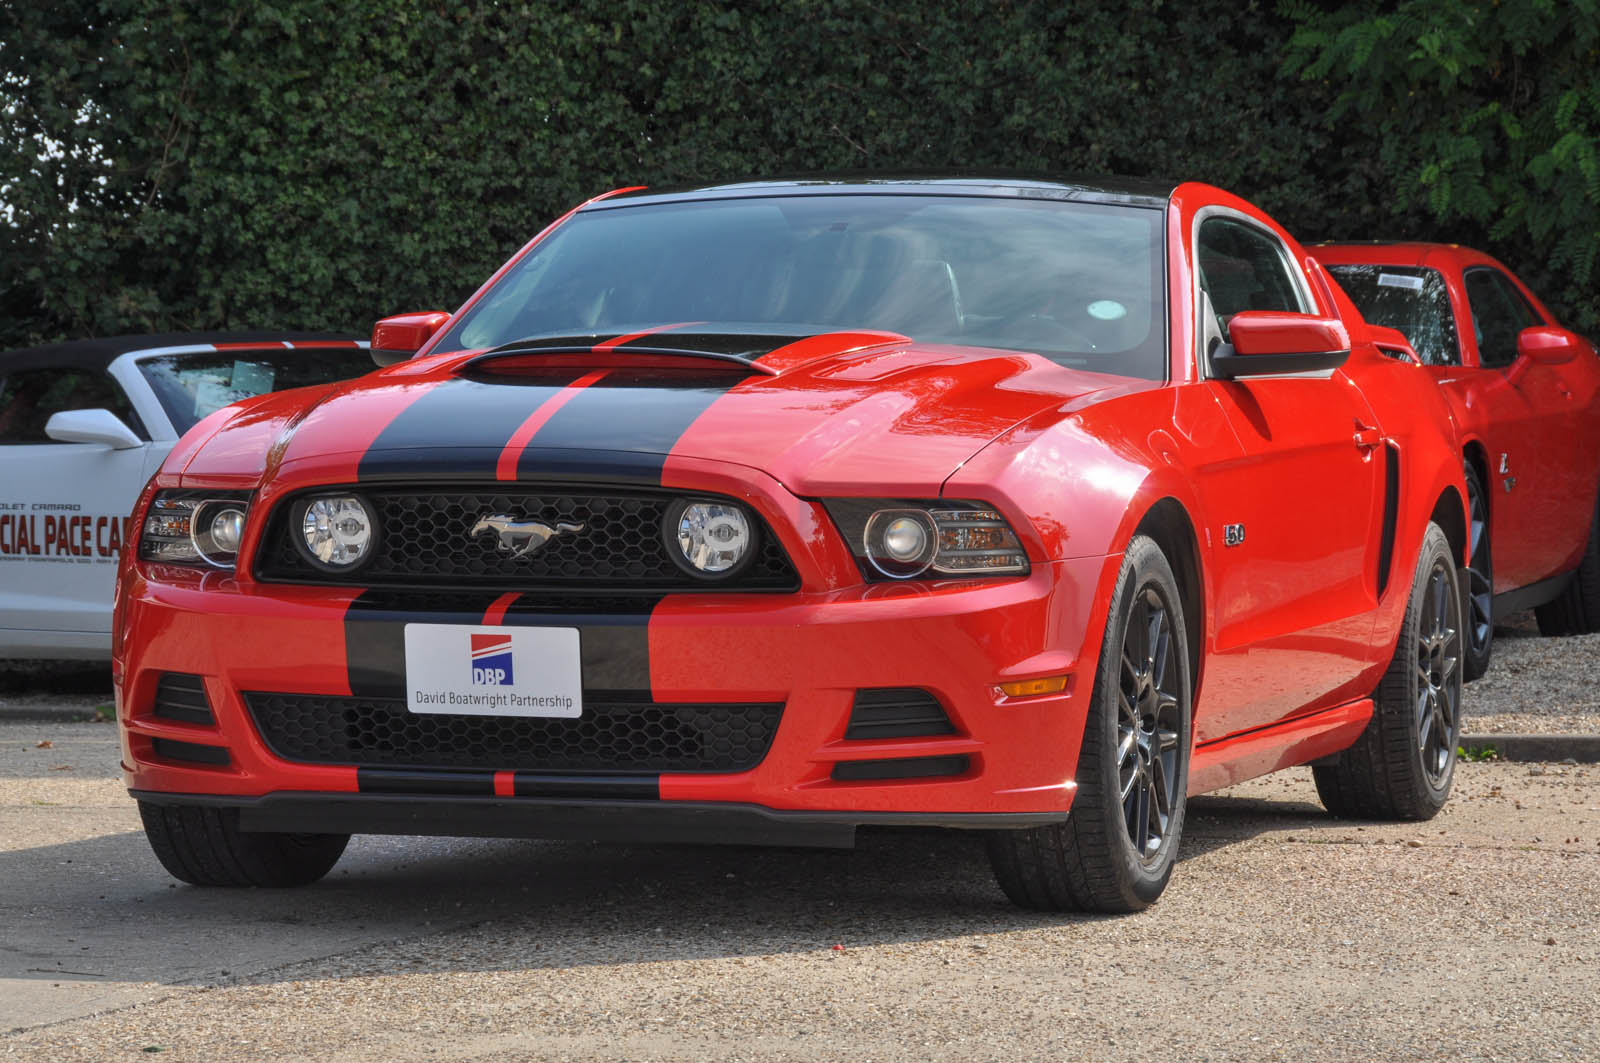 Shelby F150 For Sale >> 2014 (63) Mustang GT 5.0 Litre V8 – David Boatwright ...